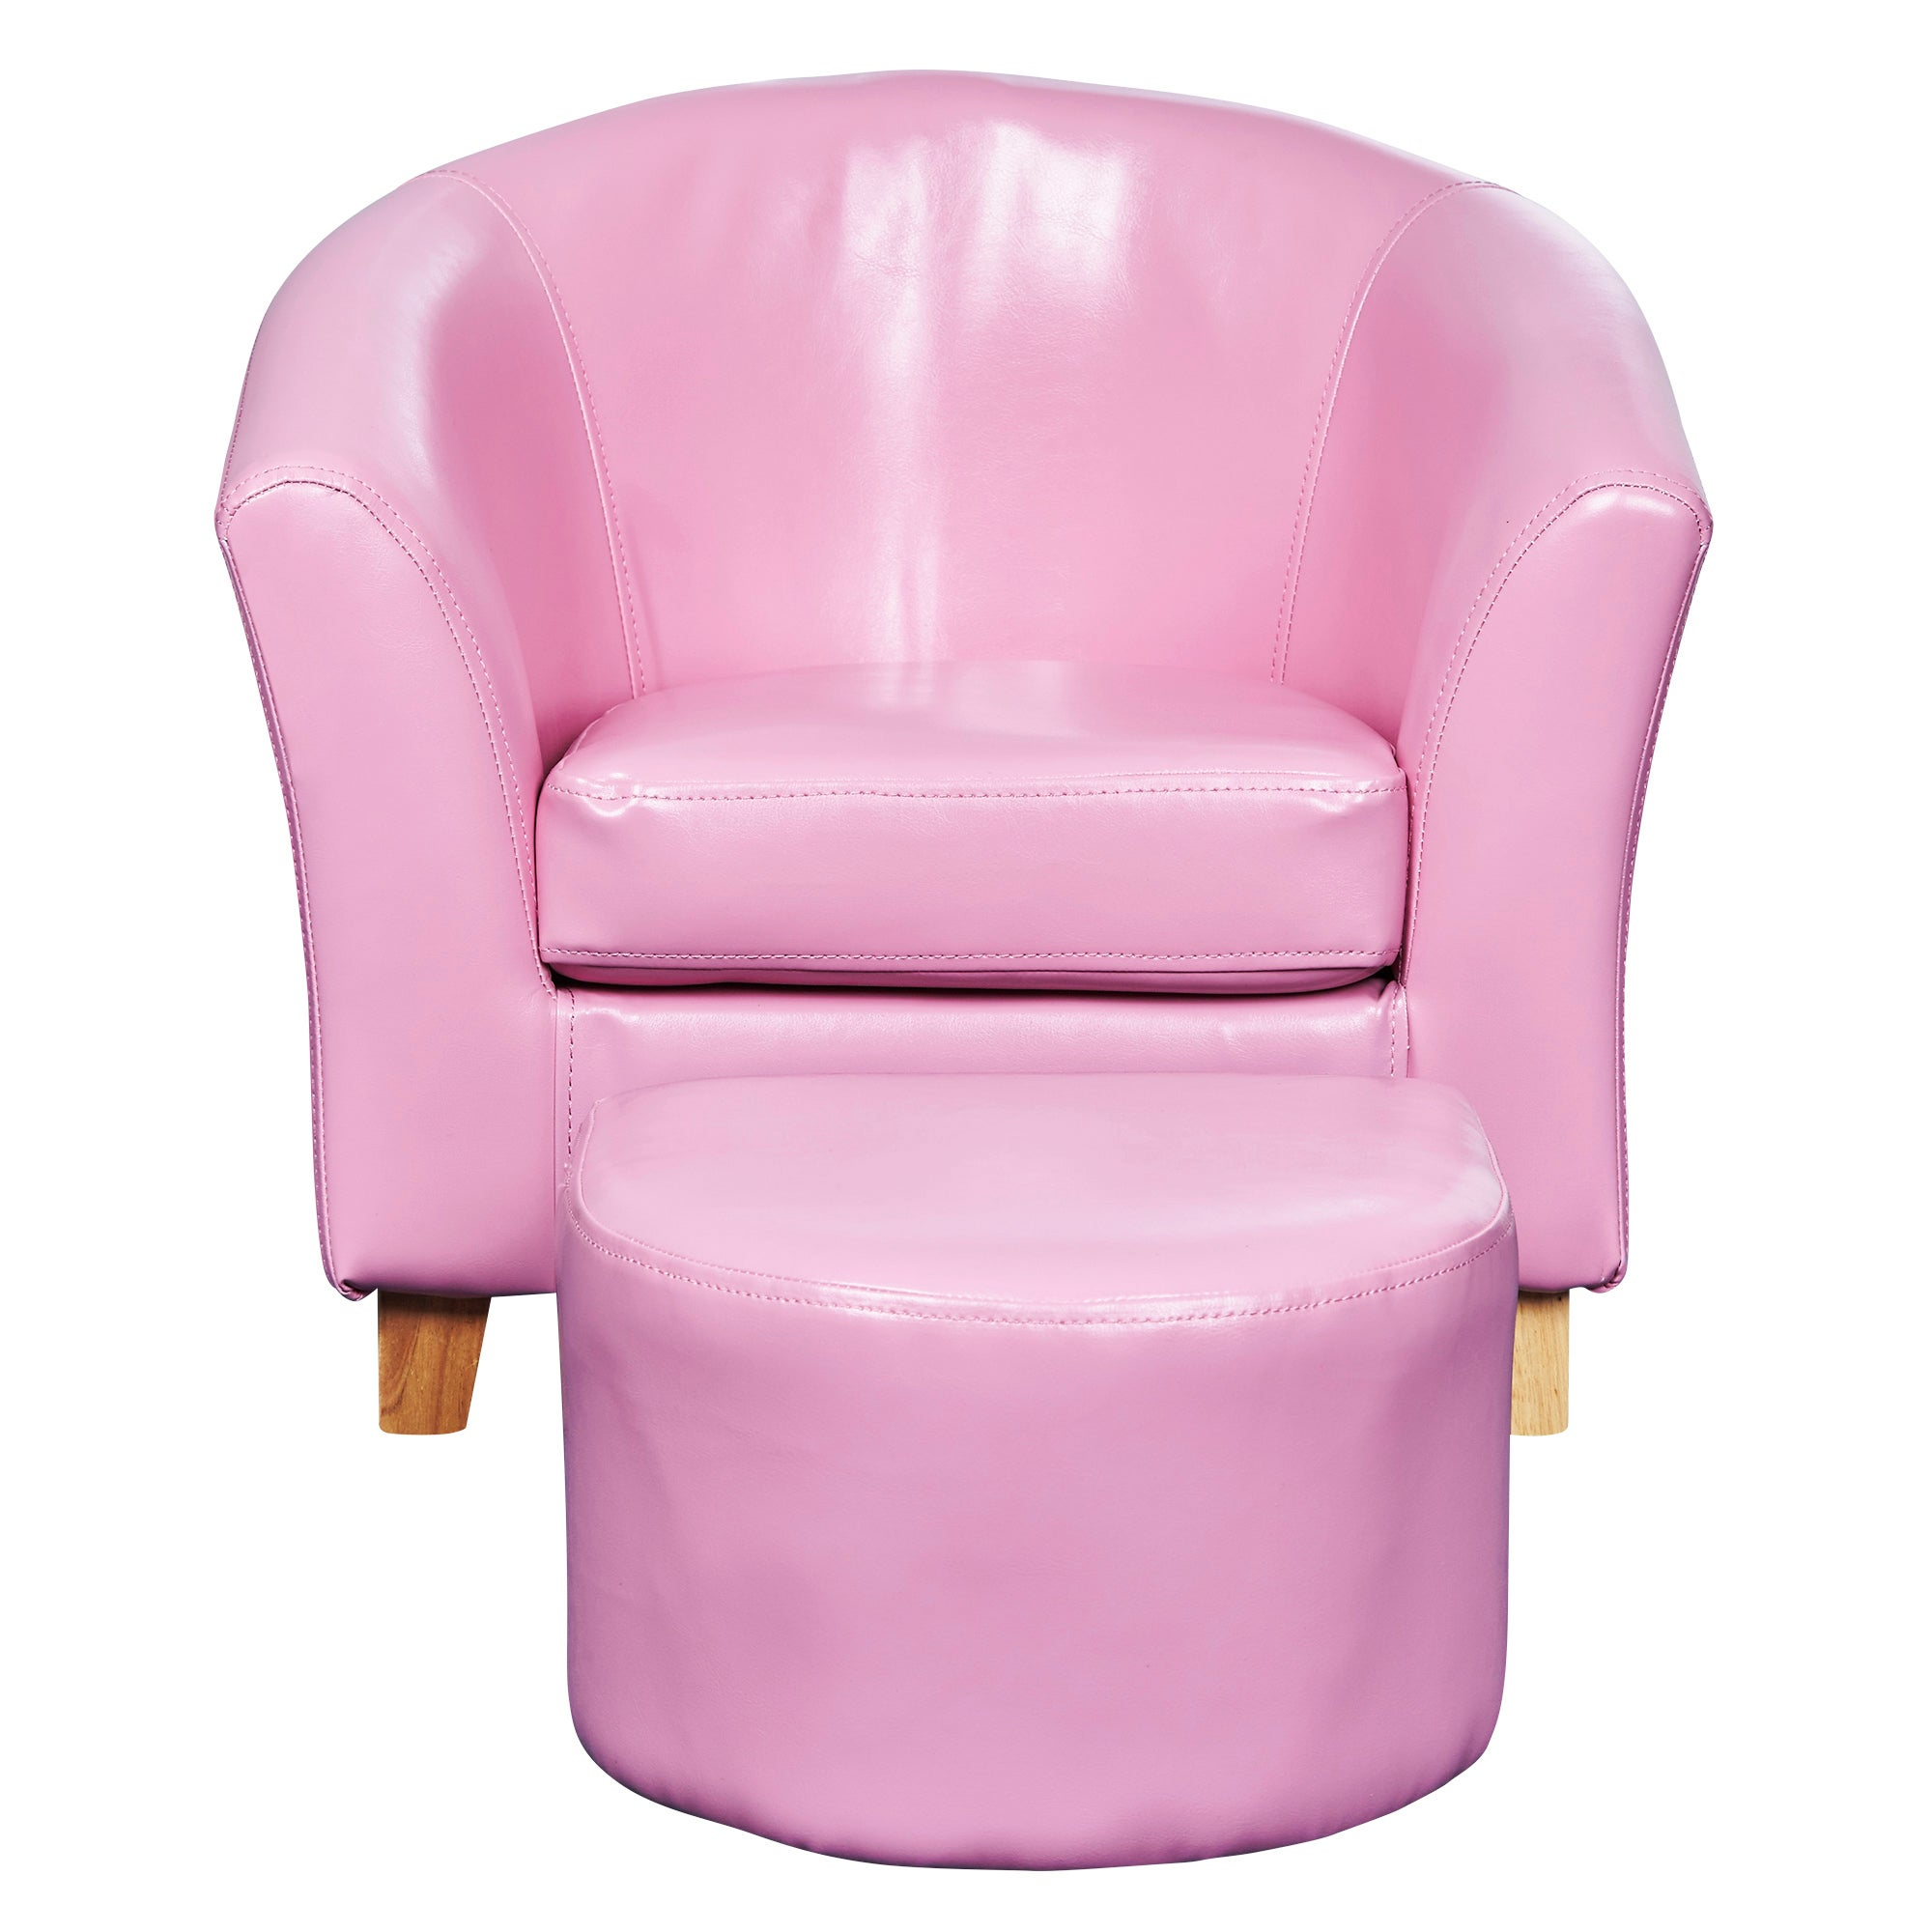 Kids Pink Faux Leather Tub Chair and Stool Pink